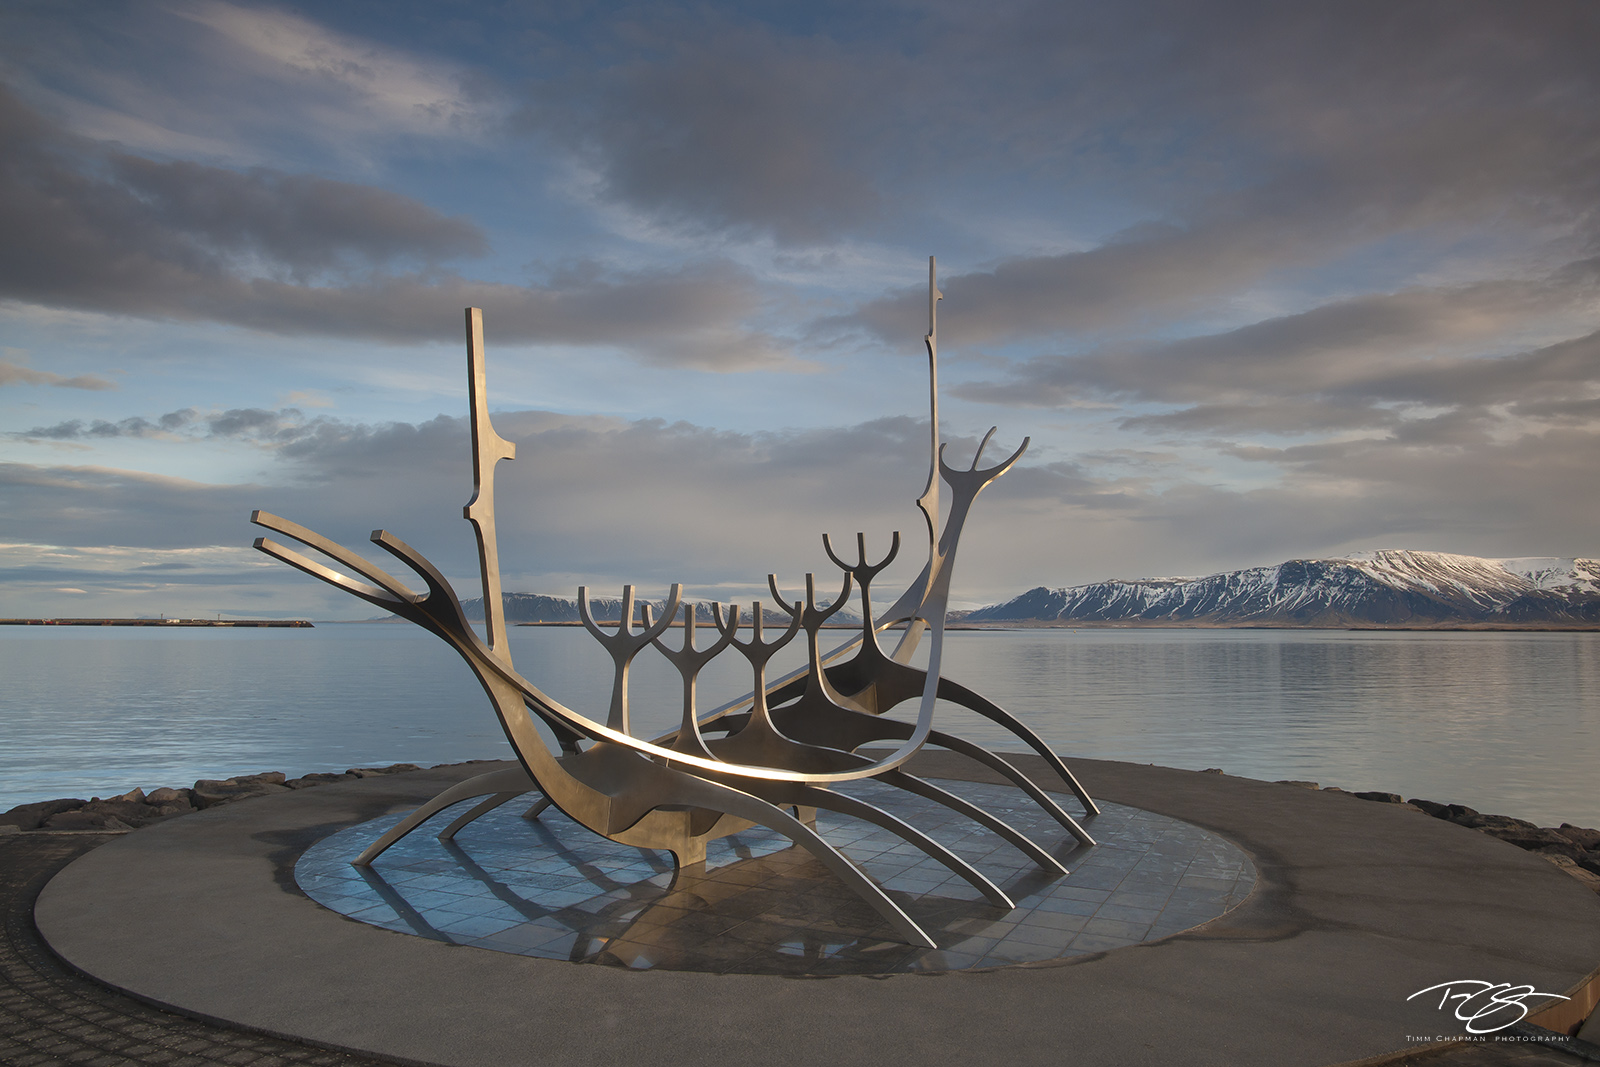 Jón Gunnar Árnason, Sun Voyager, voyageur, ode to the sun, undiscovered territory, Sæbraut, Reykjavík, Iceland, Sólfar, solfar, sculpture, golden light, morning, dawn, viking, photo